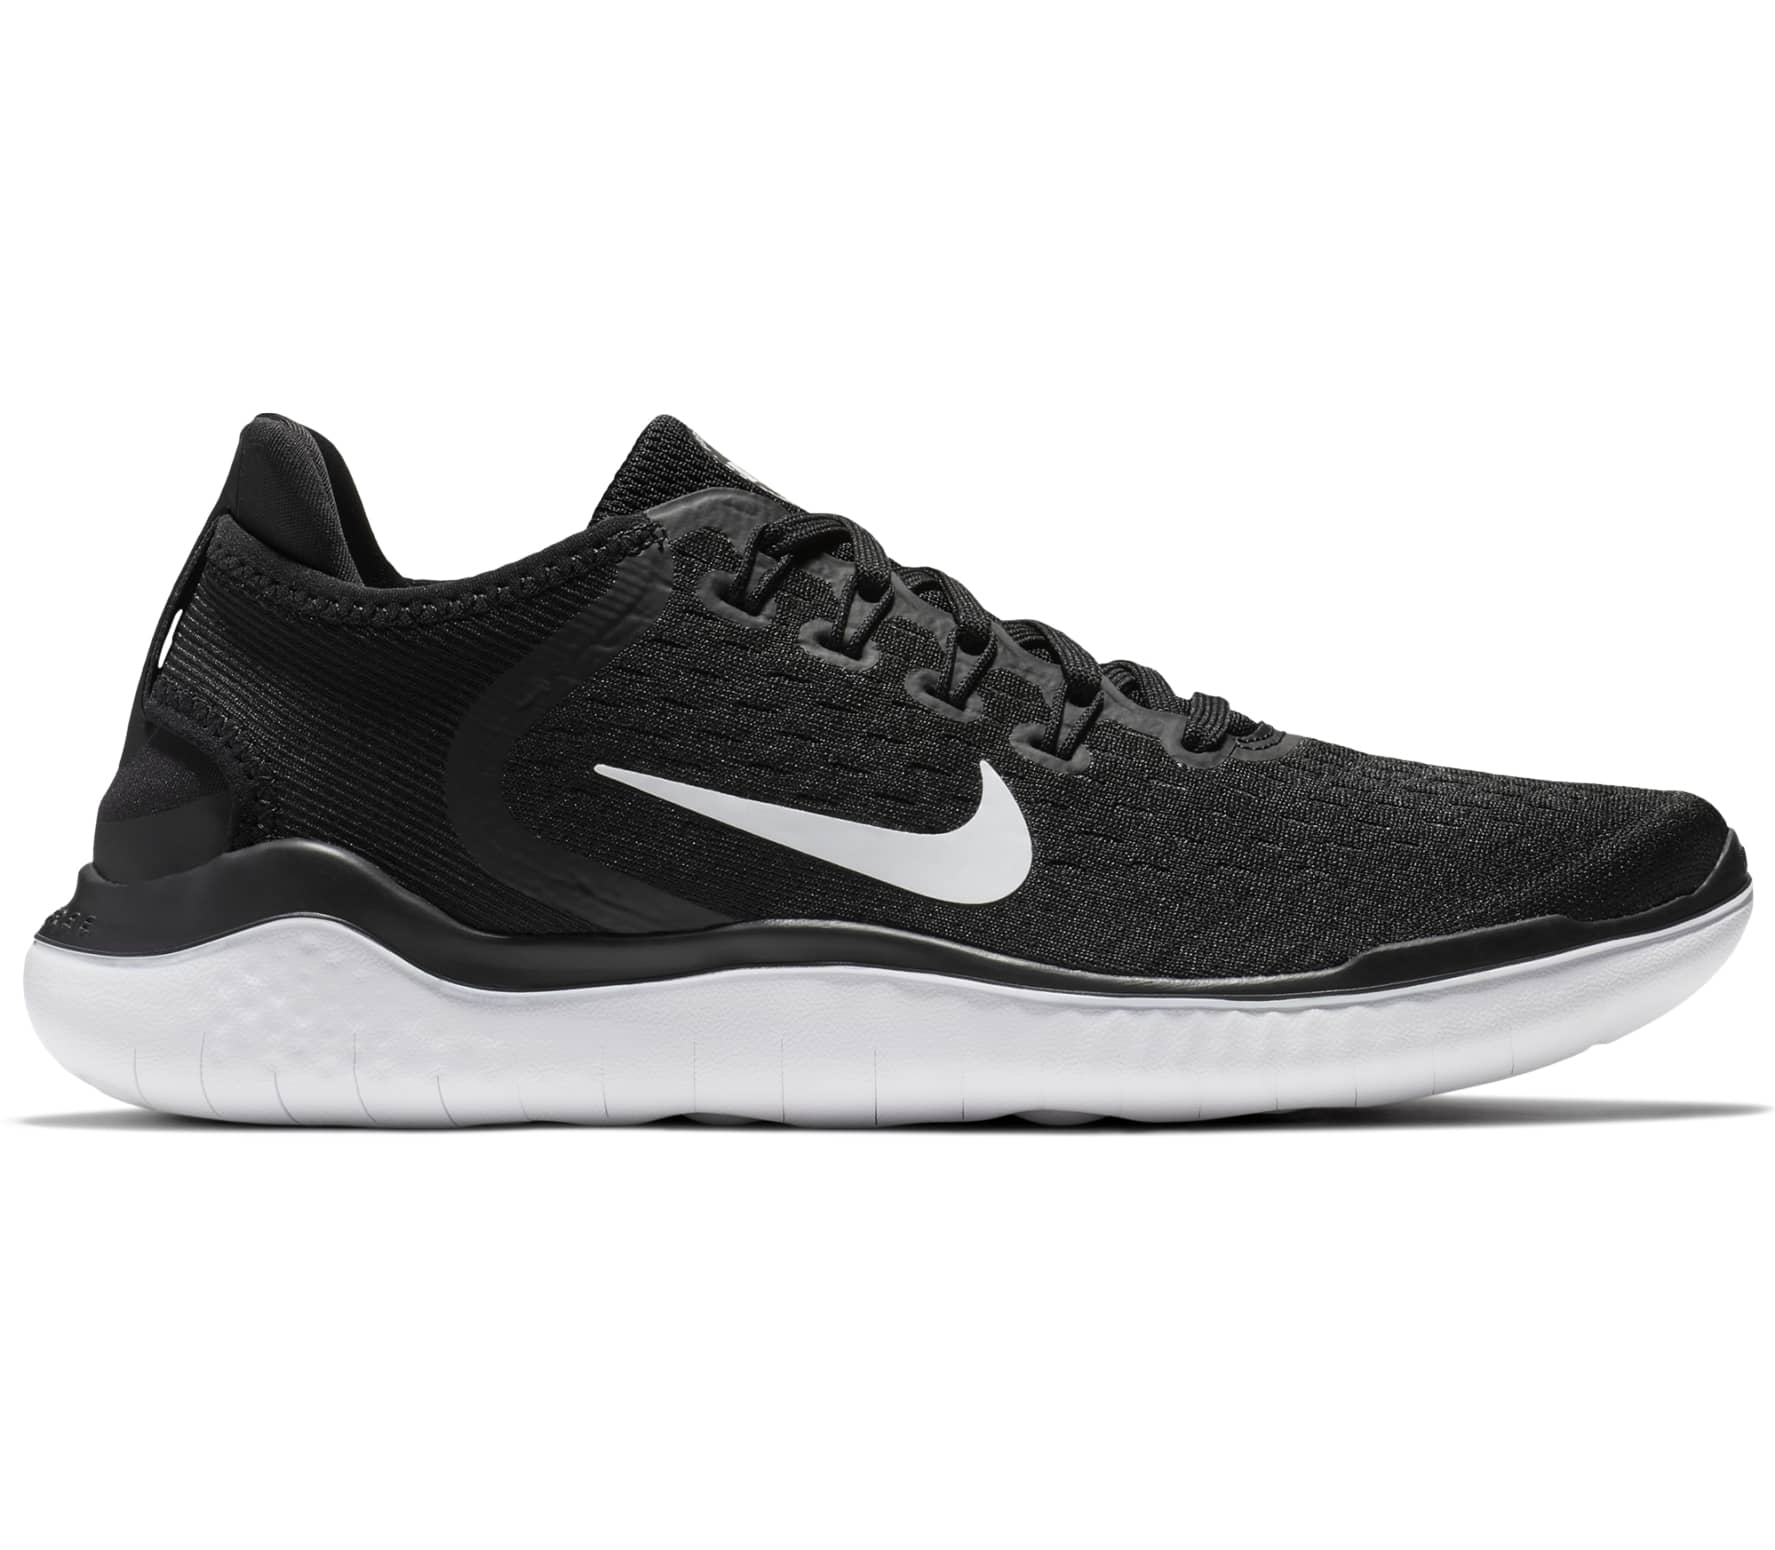 check out 9d3a0 20b47 Nike - Free RN 2018 Mujer Zapatos para correr (negro blanco)